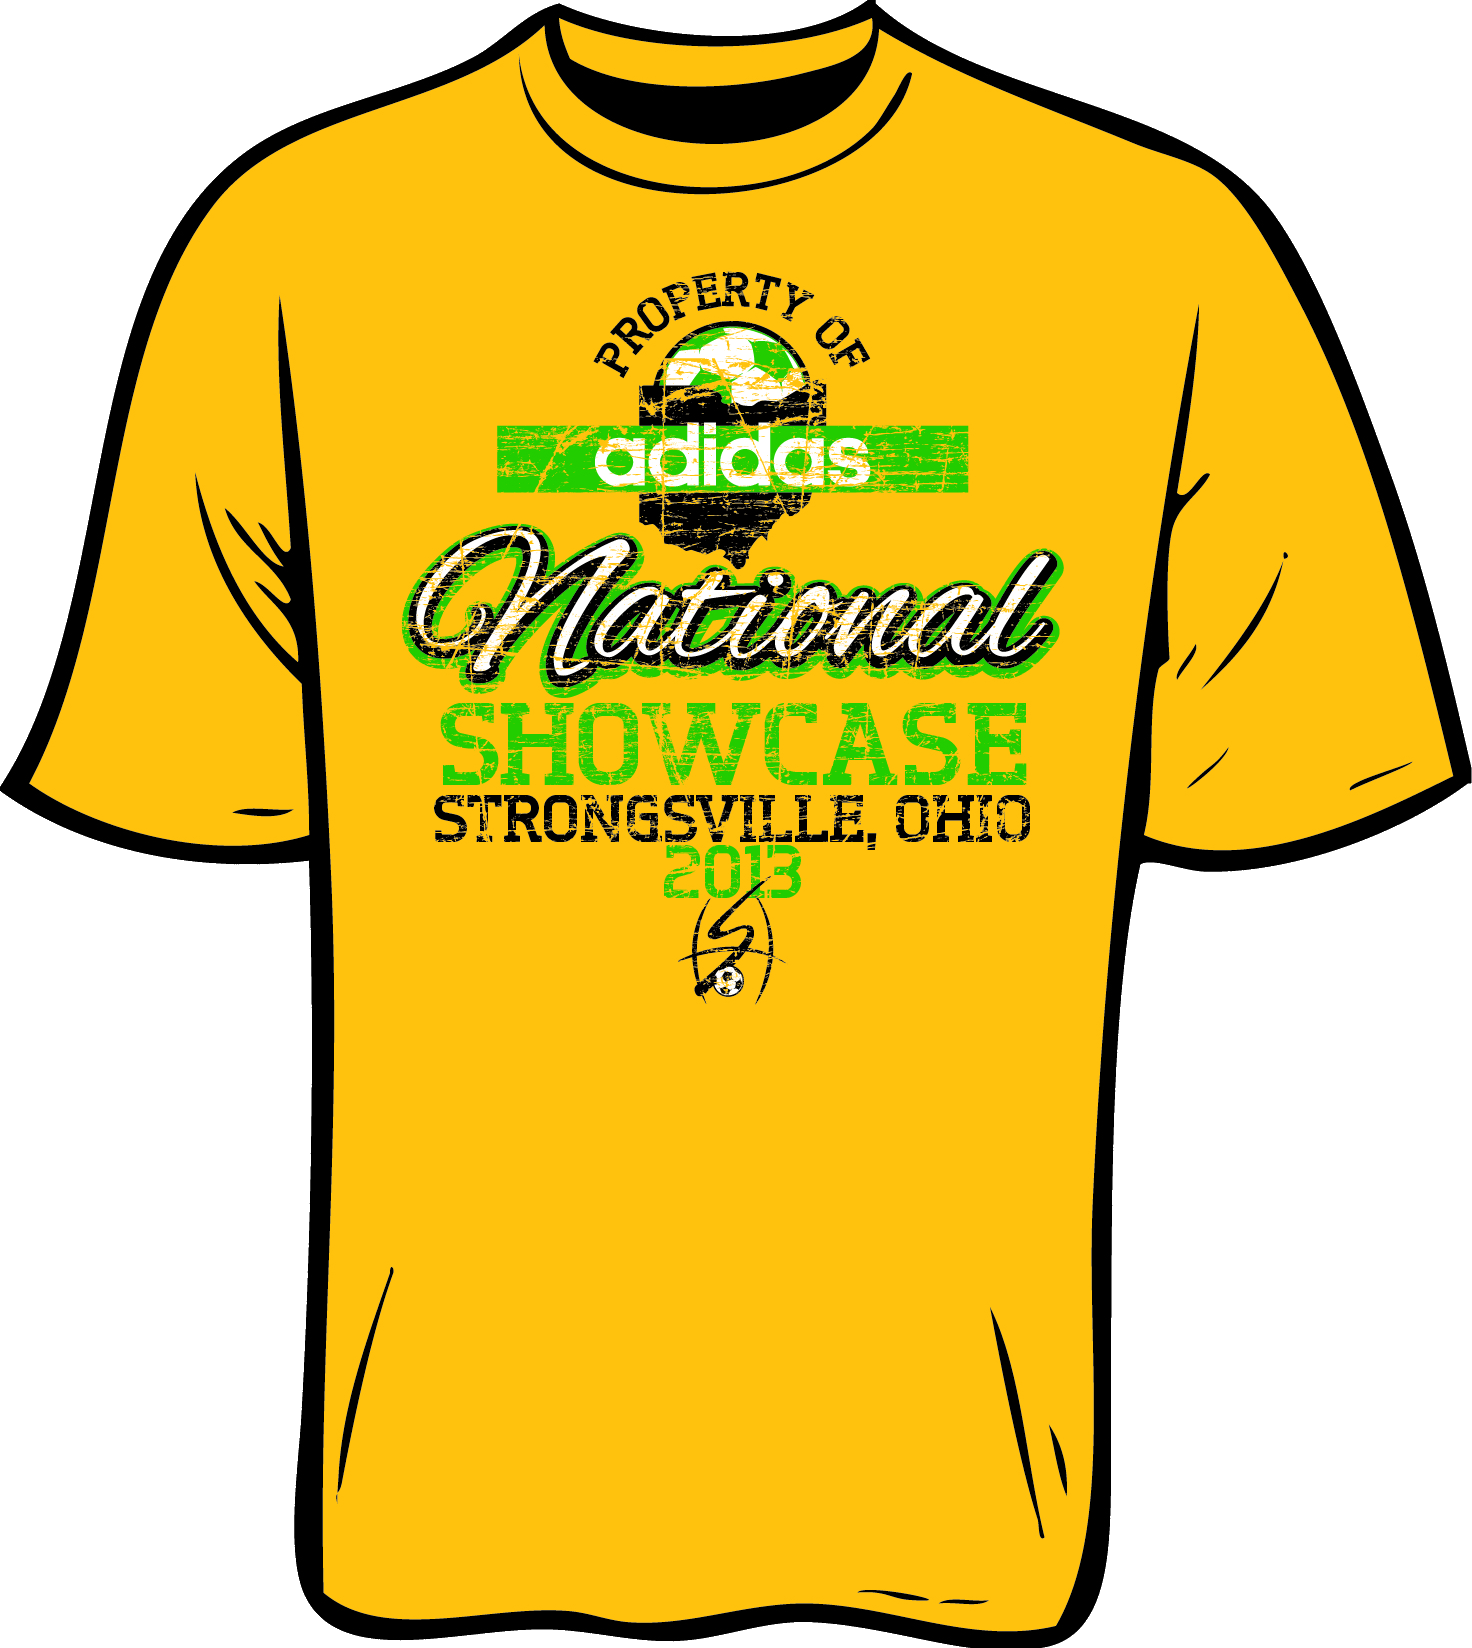 Design t shirt soccer -  Yellow T Shirt That Reads Property Of Adidas National Showcase Strongsville Ohio